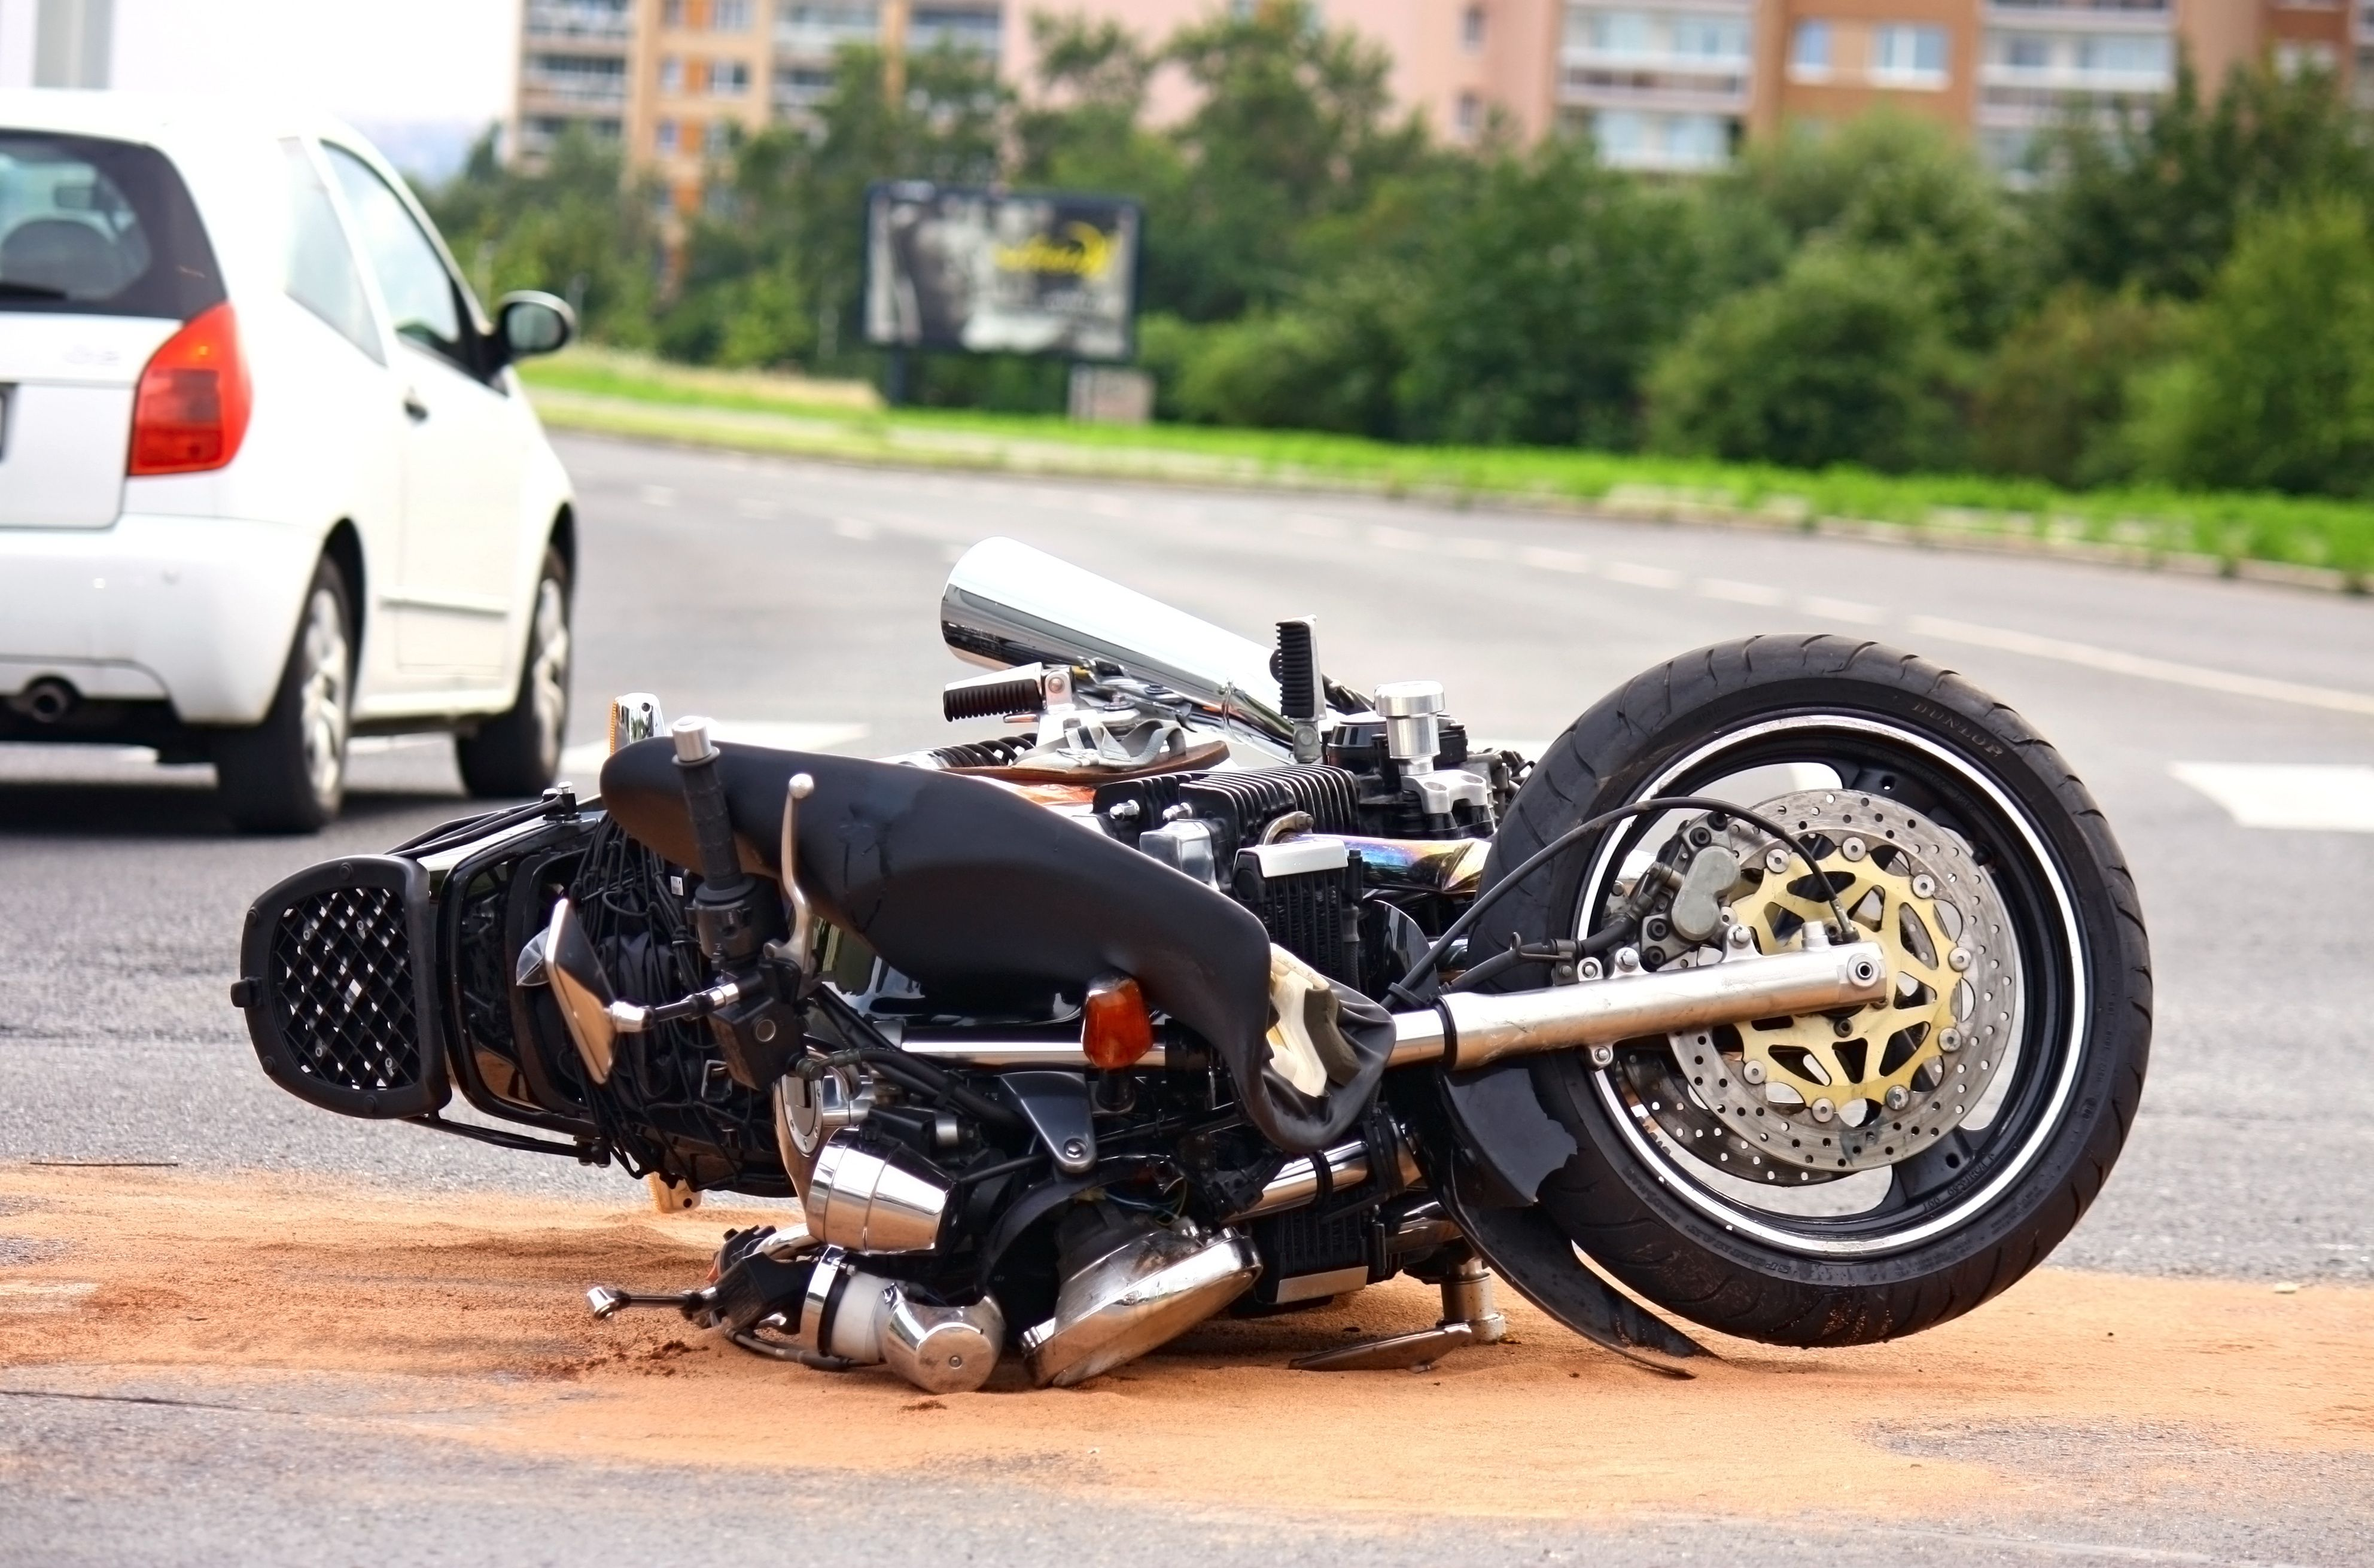 What Can I Do To Avoid Motorcycle Accidents Michael Waks